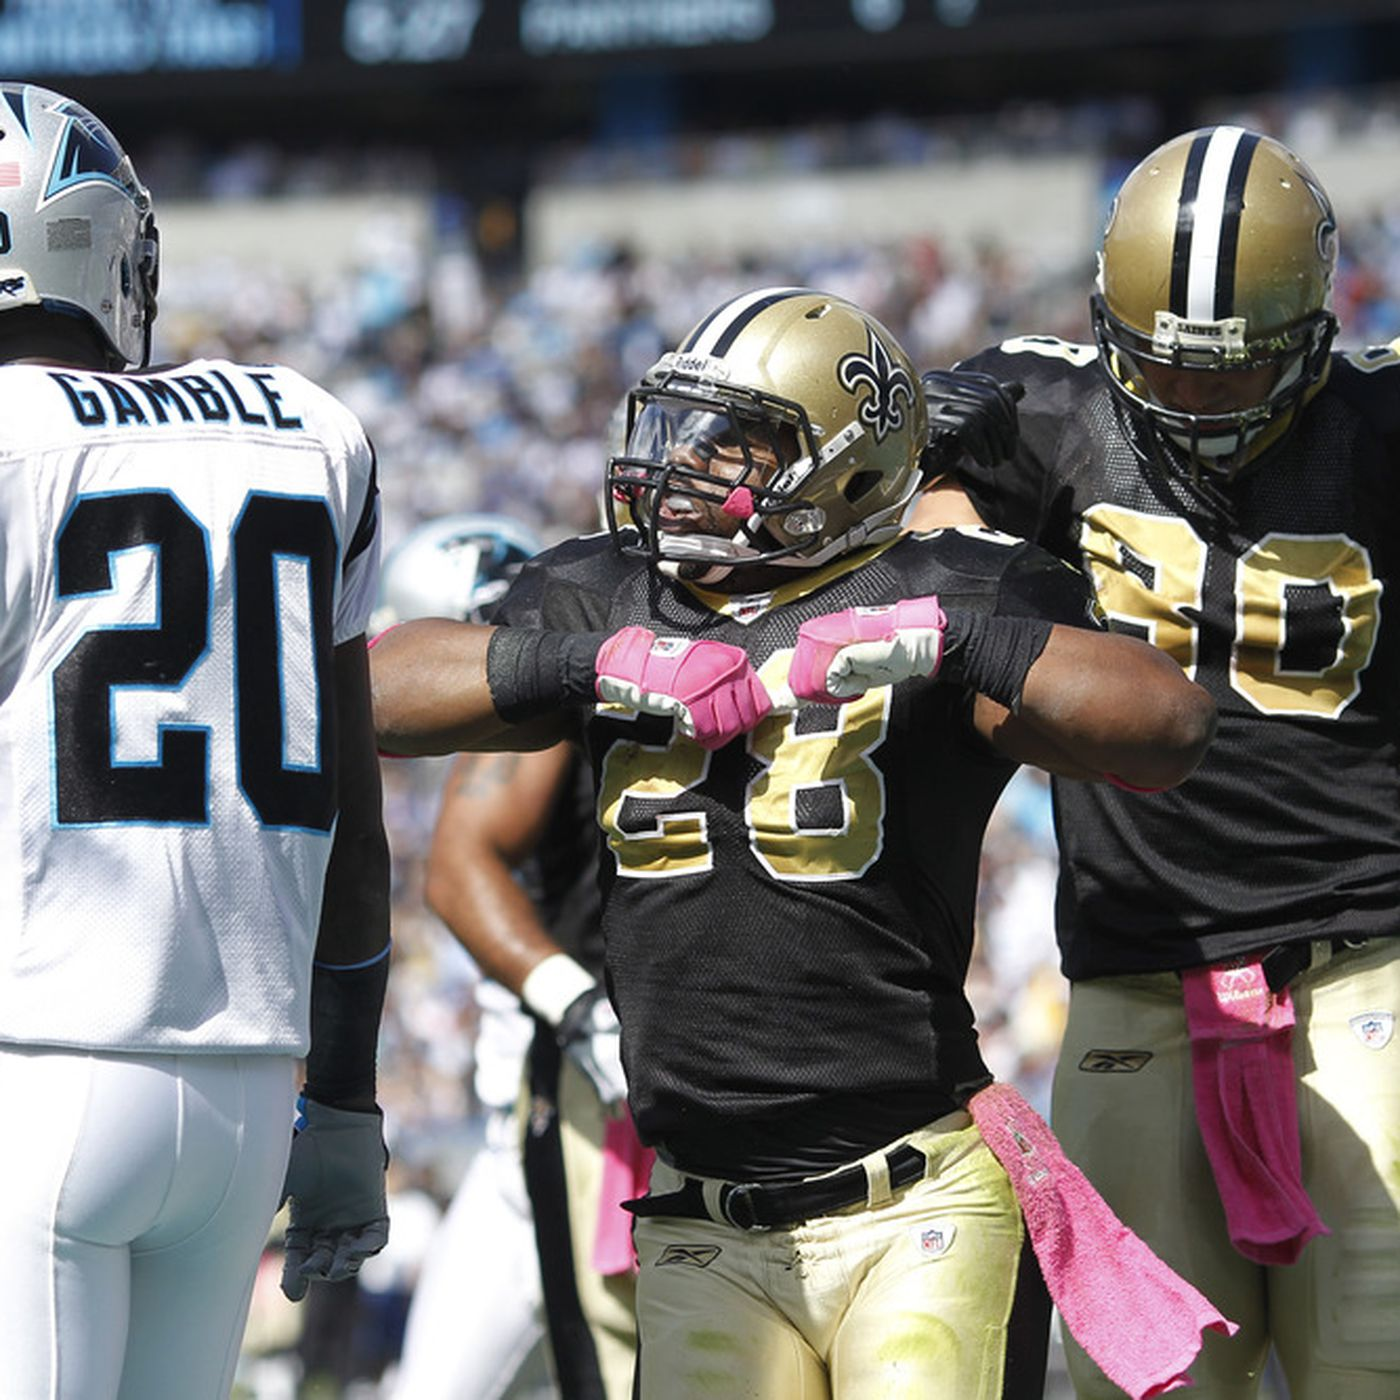 Saints News 3 19 13  Mark Ingram Switches Jersey Number To  22  Keenan  Lewis Now  28 - Canal Street Chronicles 210aec9c4